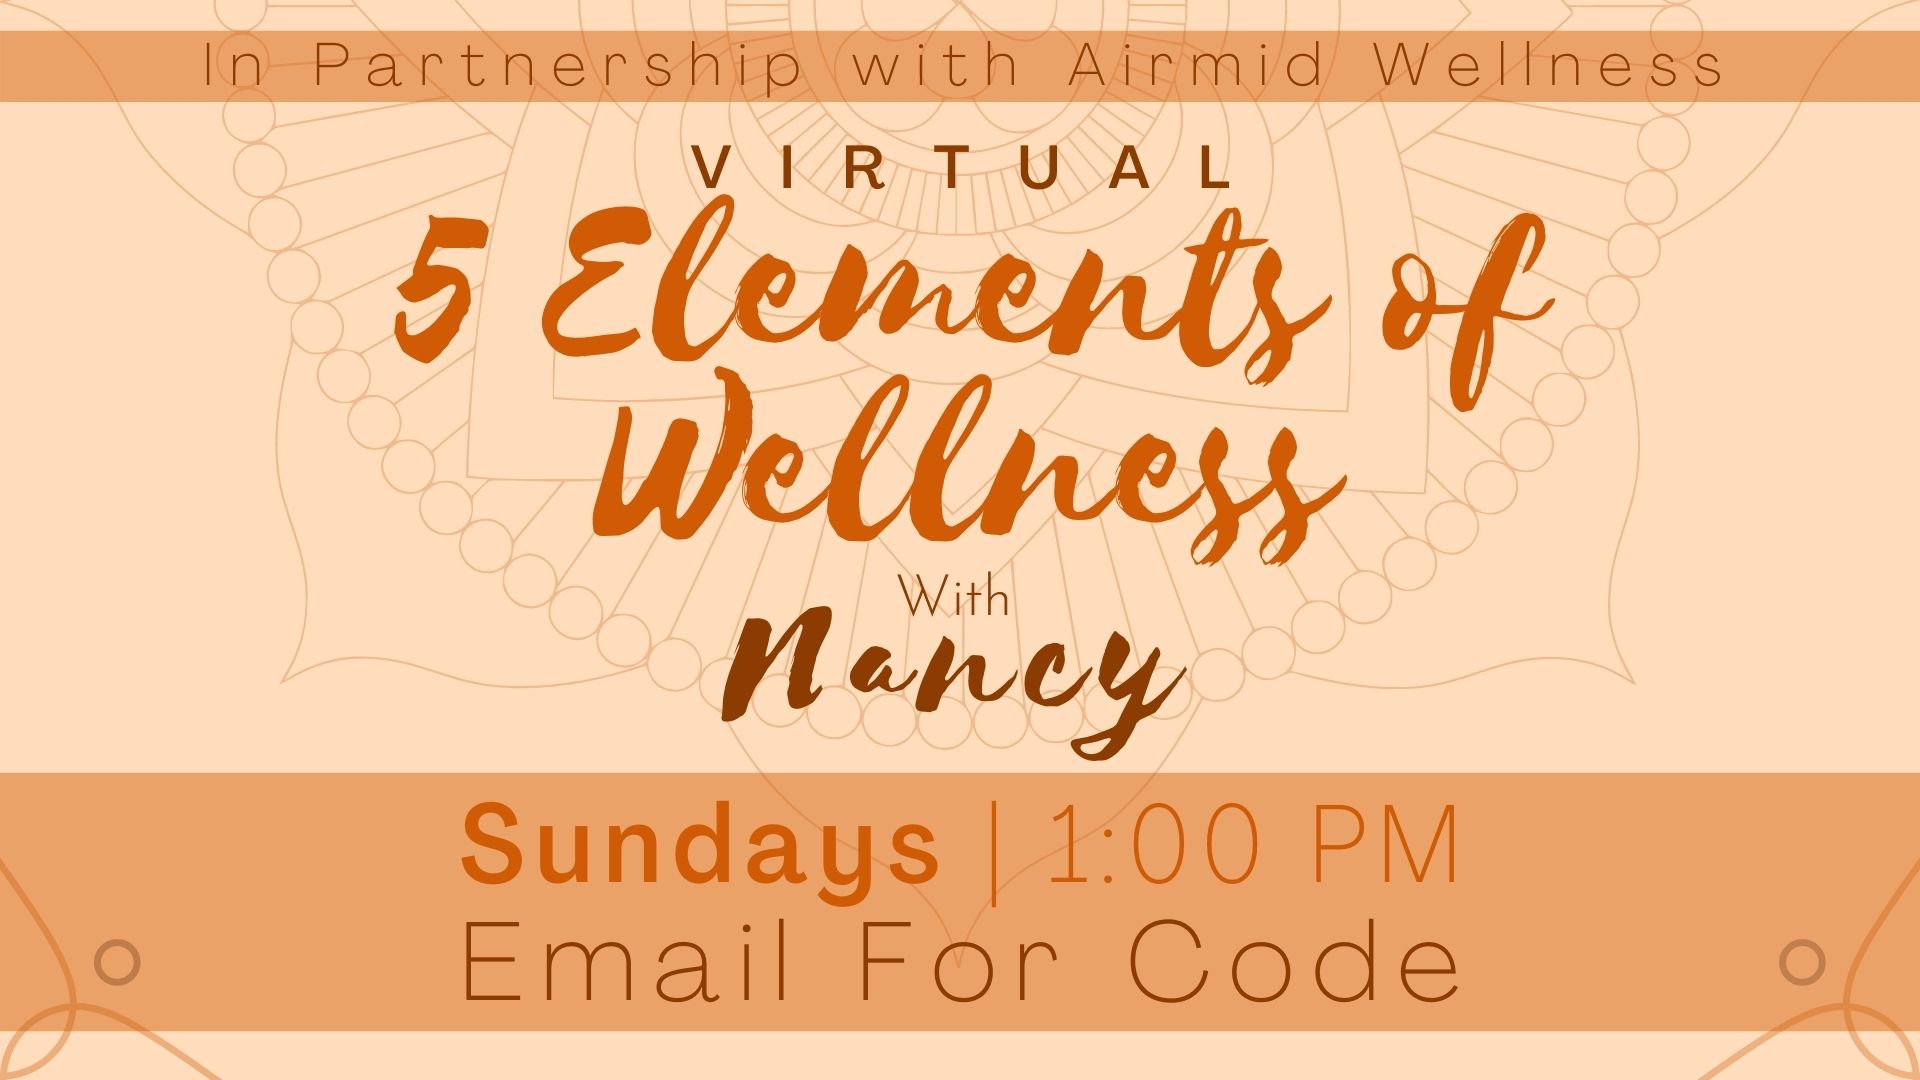 5 Elements of Wellness for a Balanced Life with Nancy